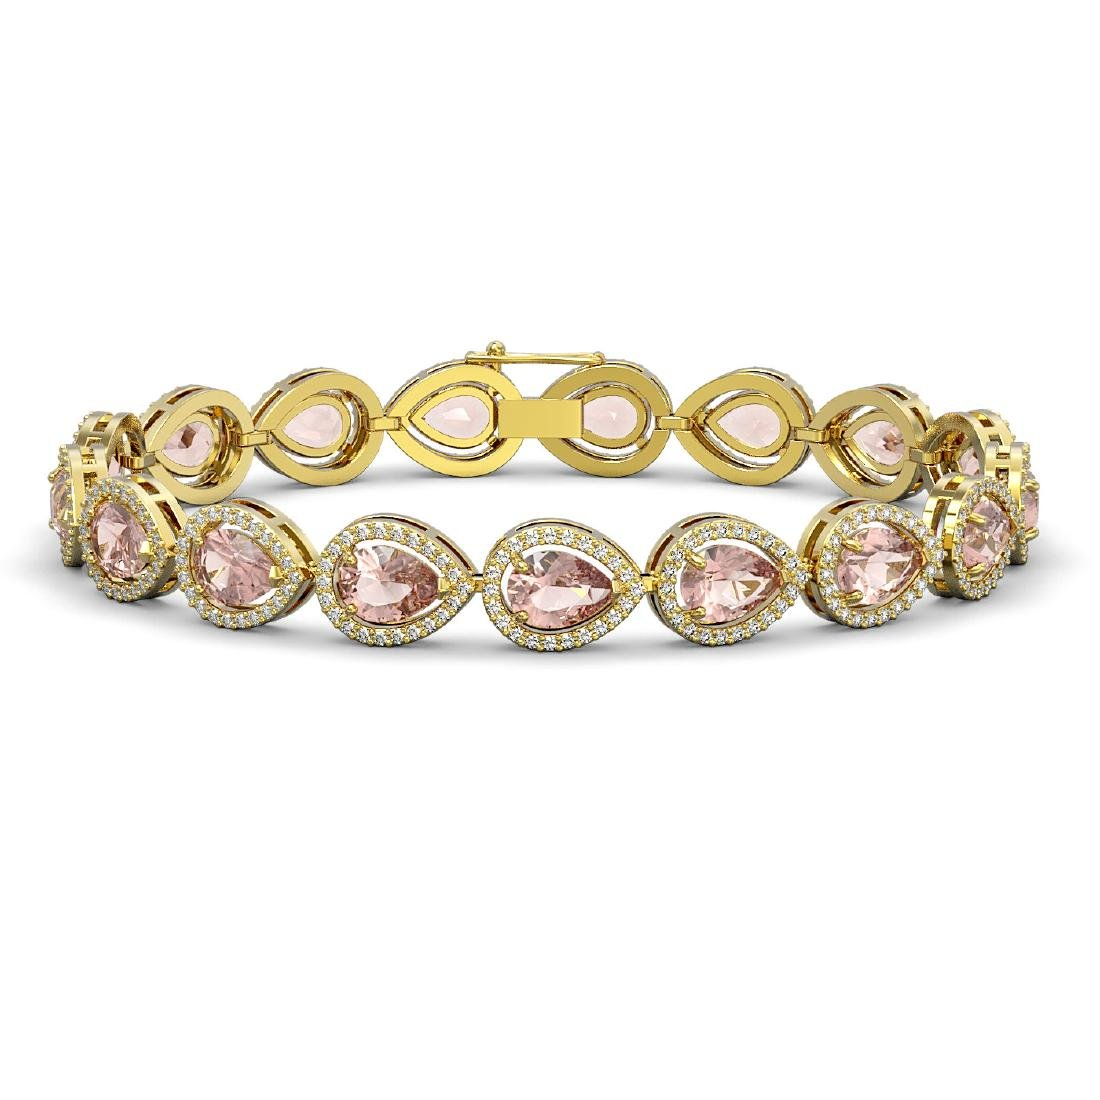 16.59 CTW Morganite & Diamond Halo Bracelet 10K Yellow